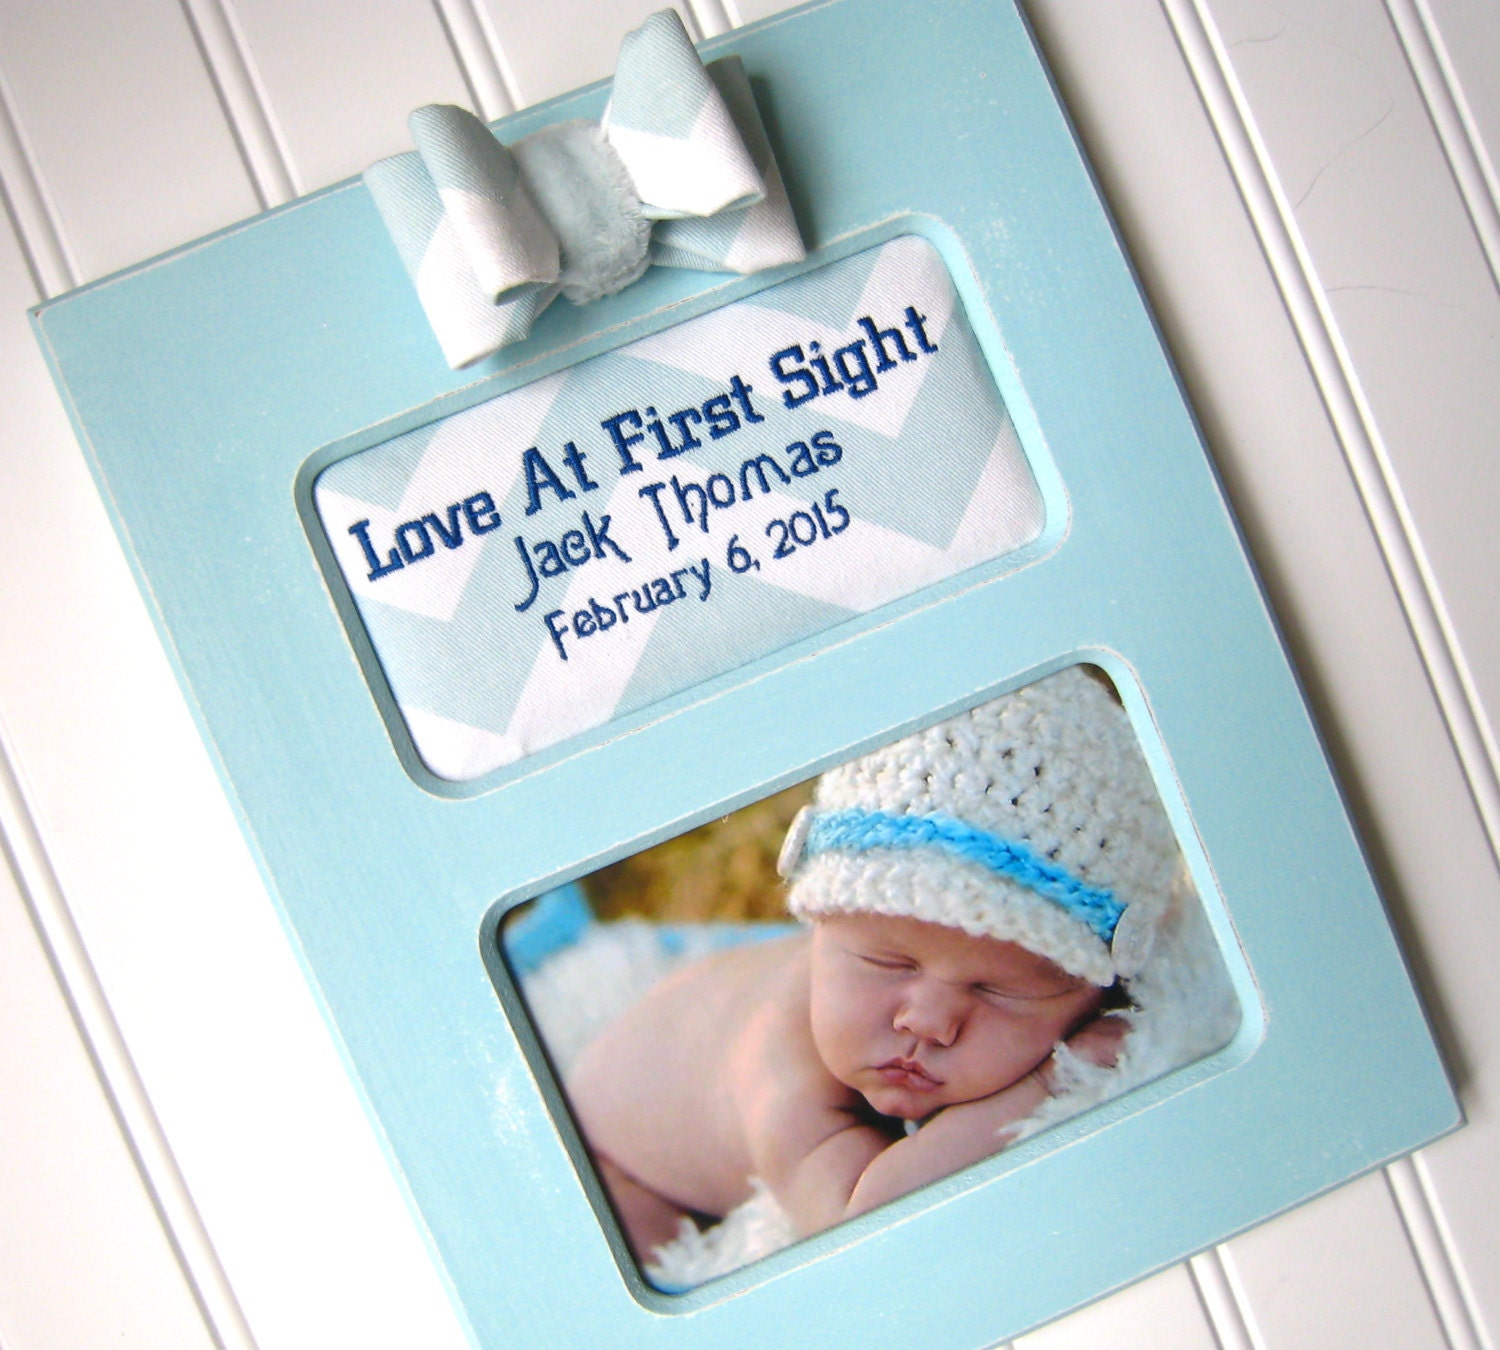 Custom baby boy picture frame baby shower gift ultrasound frame 4100 jeuxipadfo Images